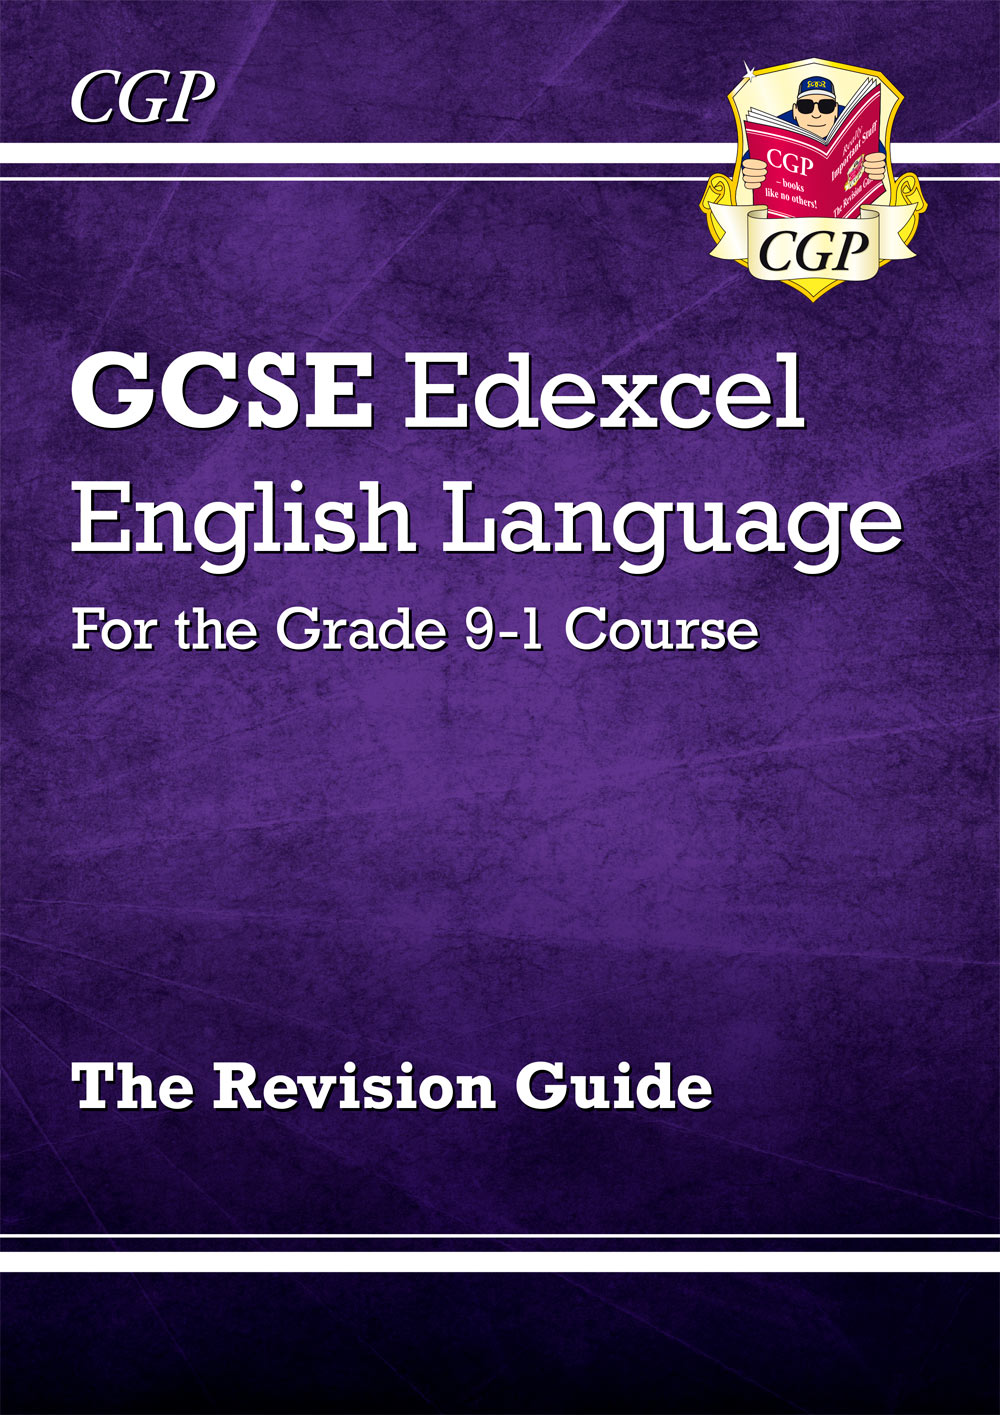 ENER41 - GCSE English Language Edexcel Revision Guide - for the Grade 9-1 Course